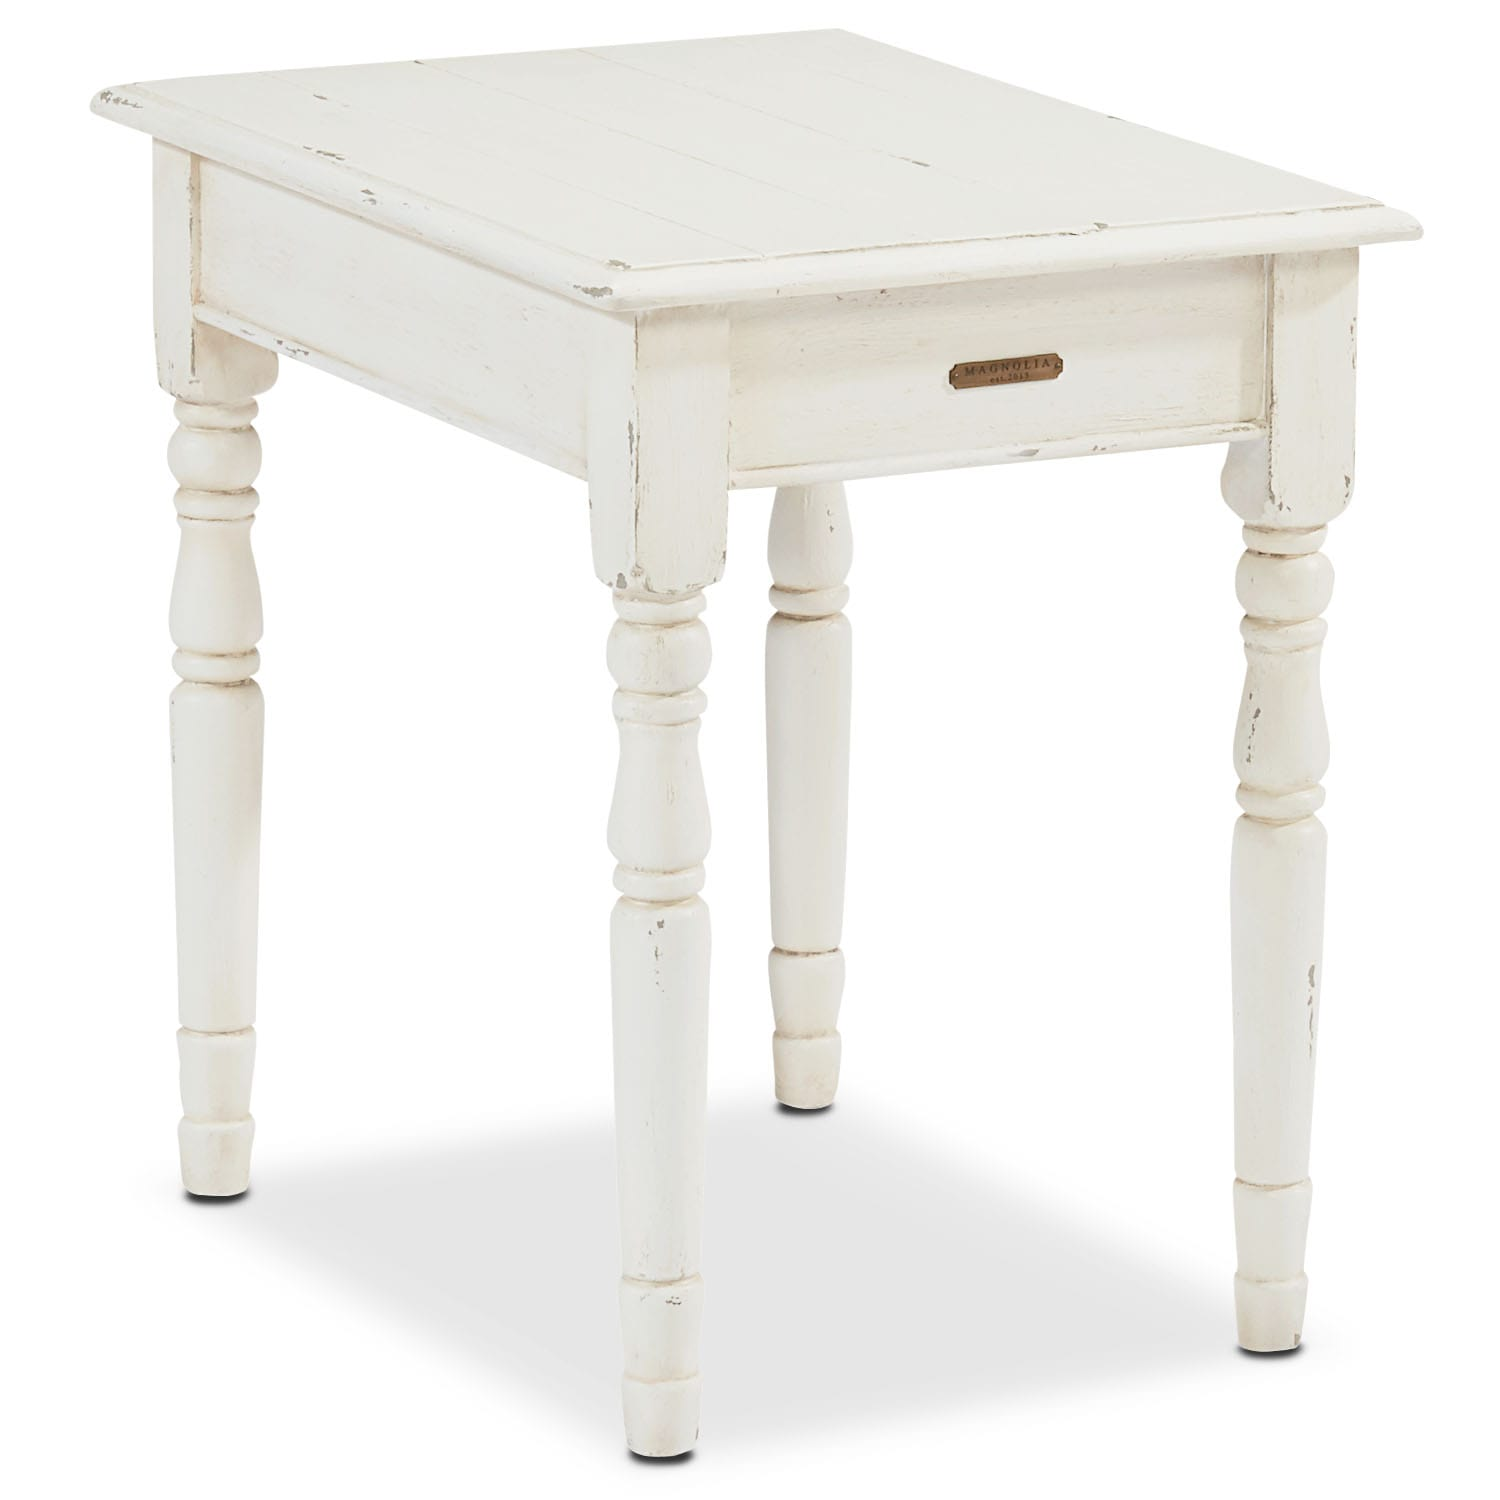 Taper Turned End Table - White